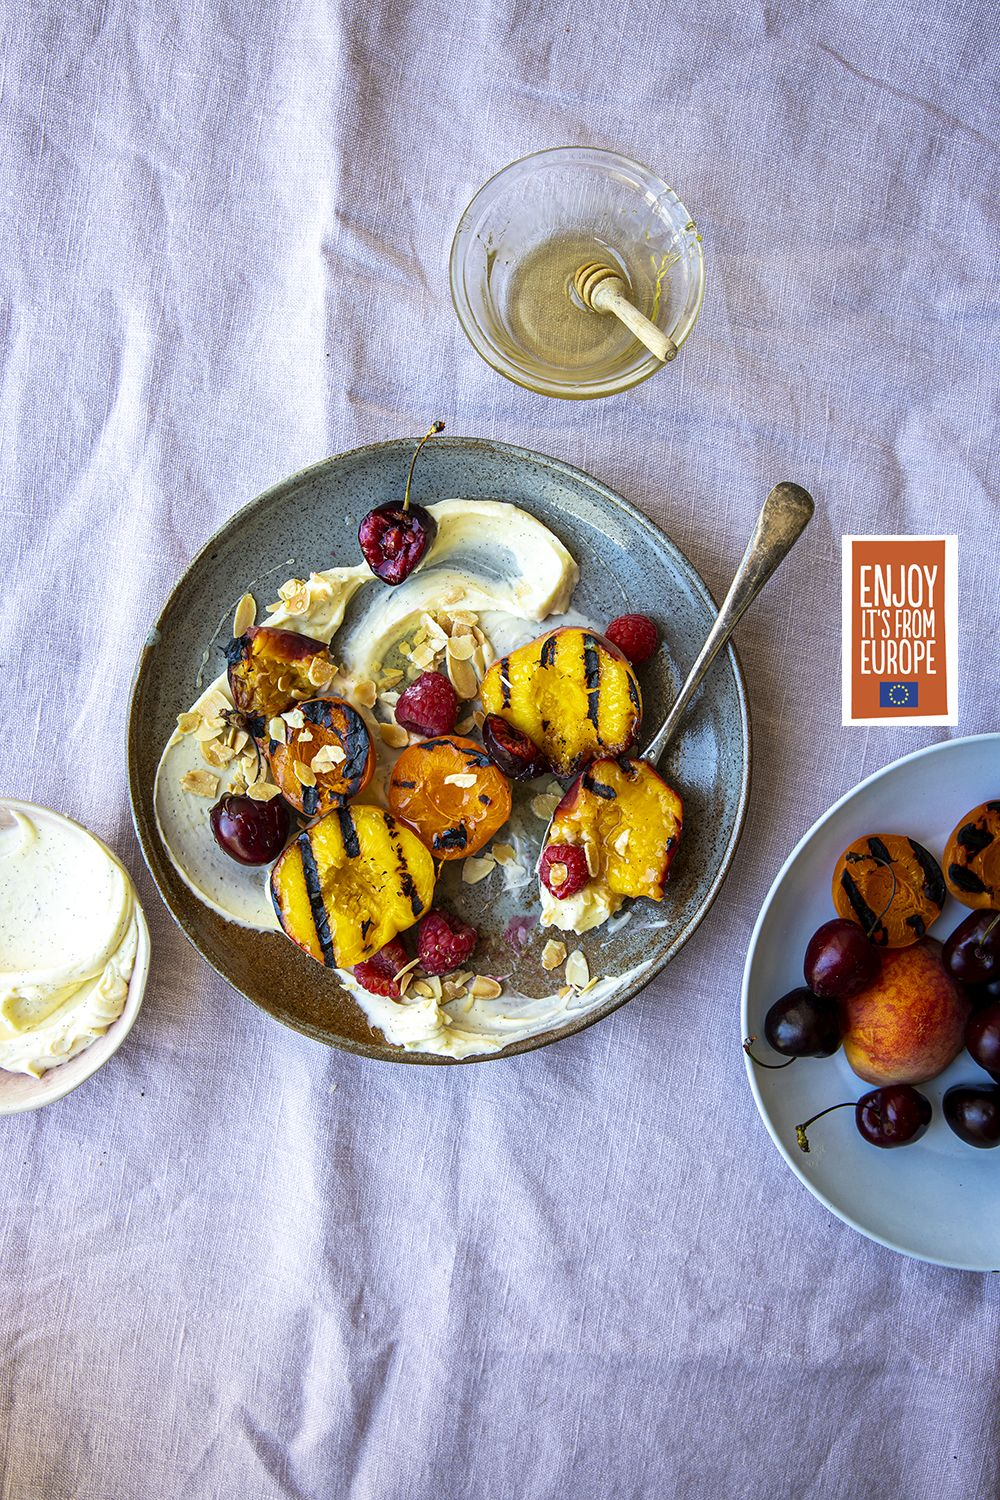 Griddled_stone_fruit-2_copy_with_logo